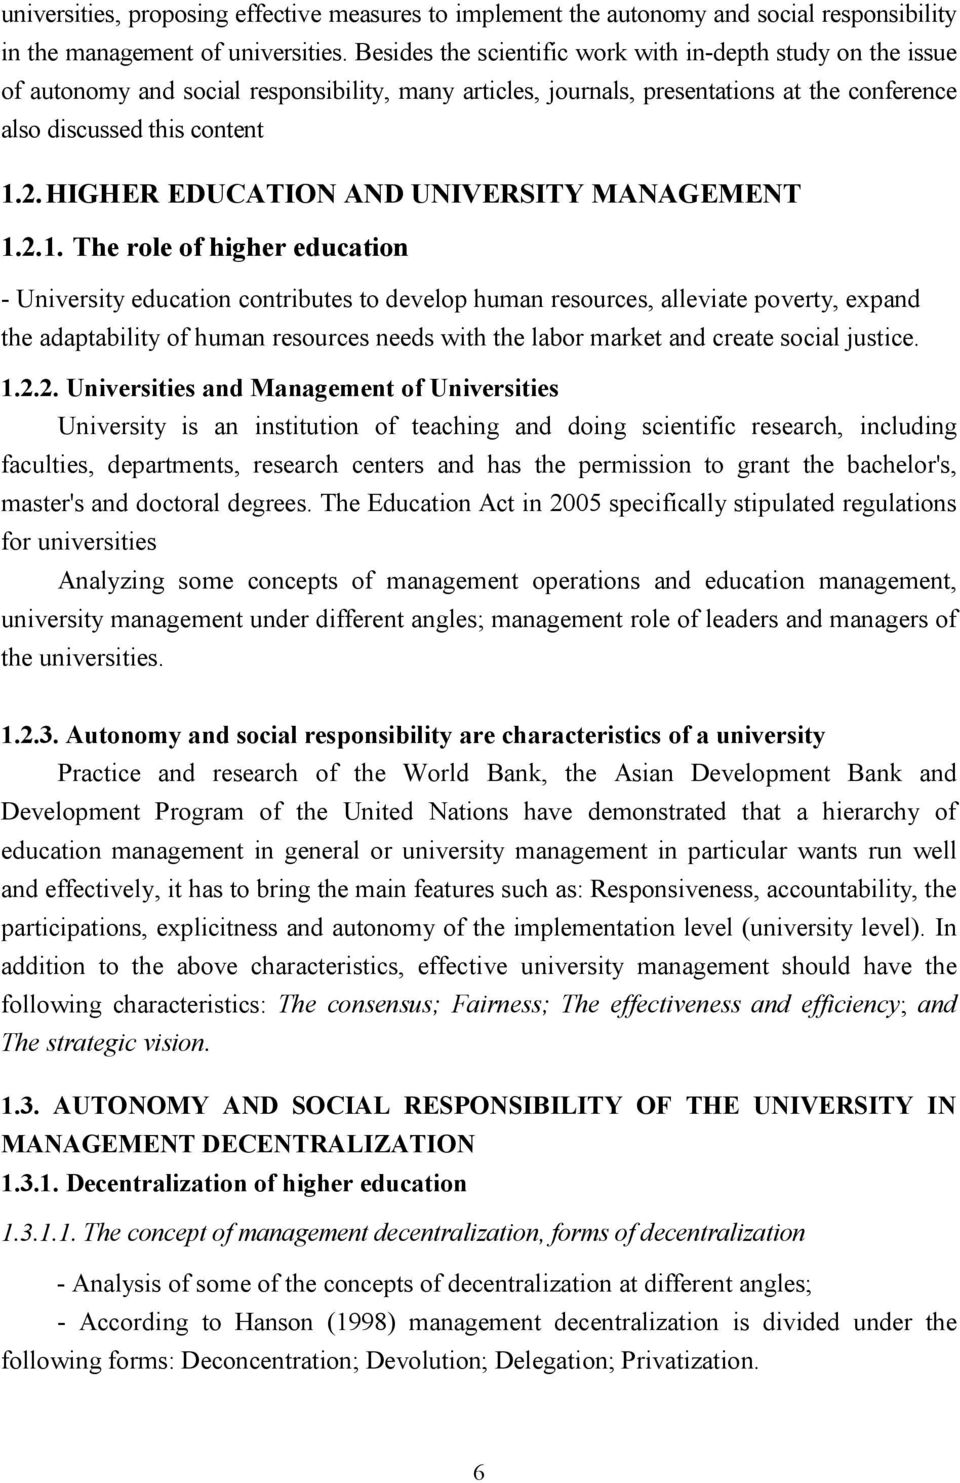 HIGHER EDUCATION AND UNIVERSITY MANAGEMENT 1.